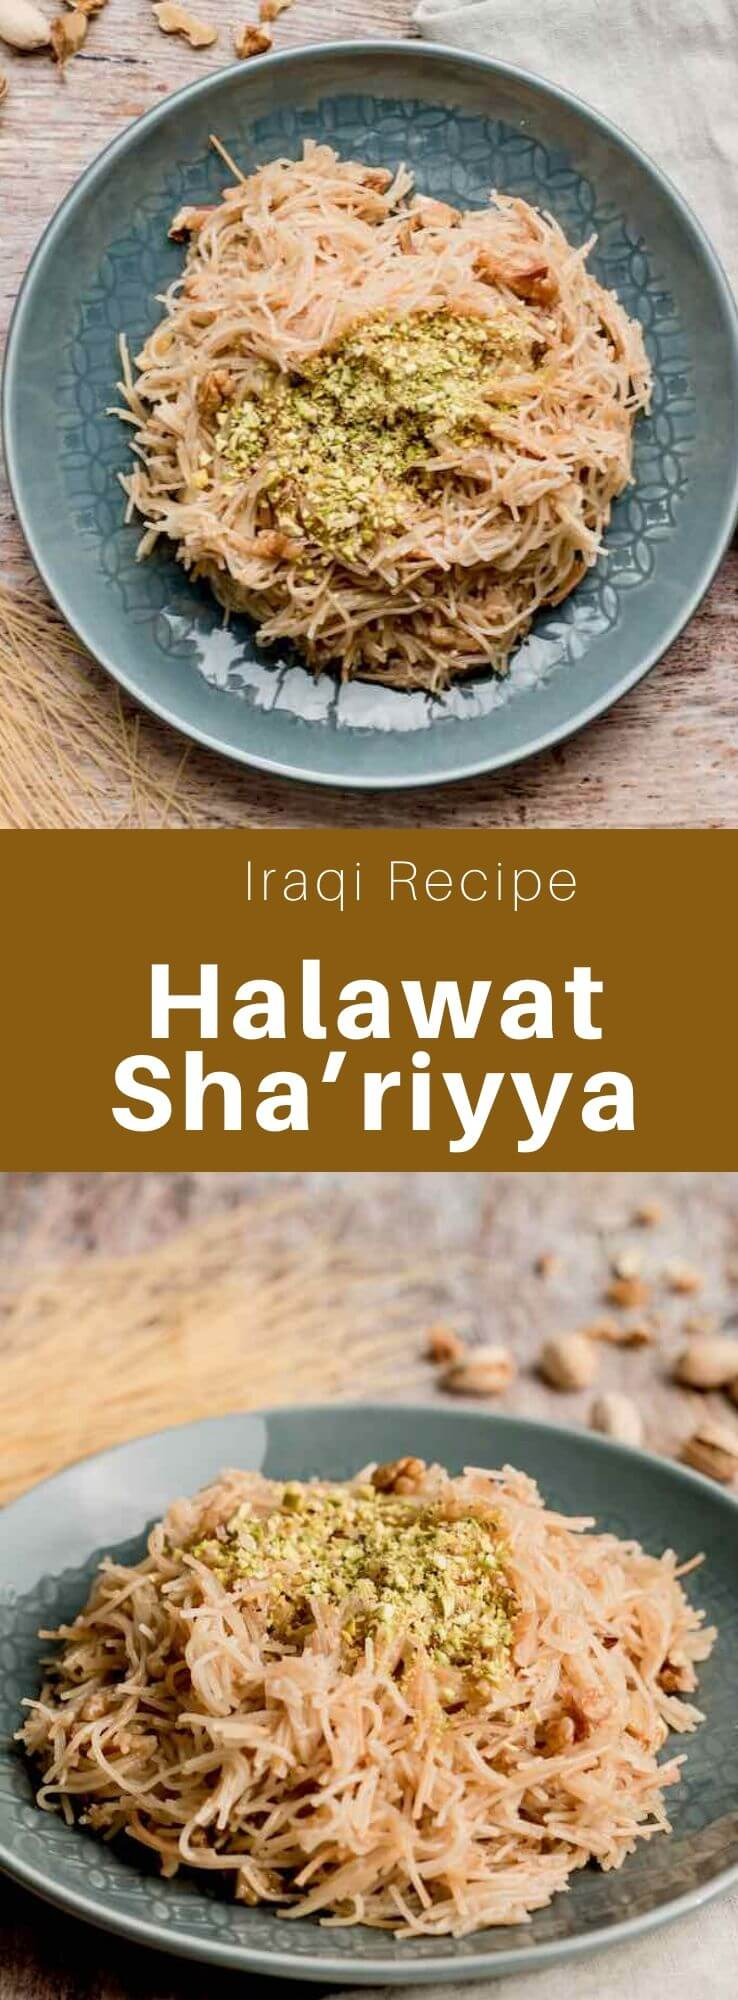 Halawat sha'riyya is a delicious typical Iraqi dessert made from vermicelli and walnuts scented with cardamom and rose water. #MiddleEast #MiddleEastern #Iraq #IraqiCuisine #IraqiRecipe #WorldCuisine #196flavors